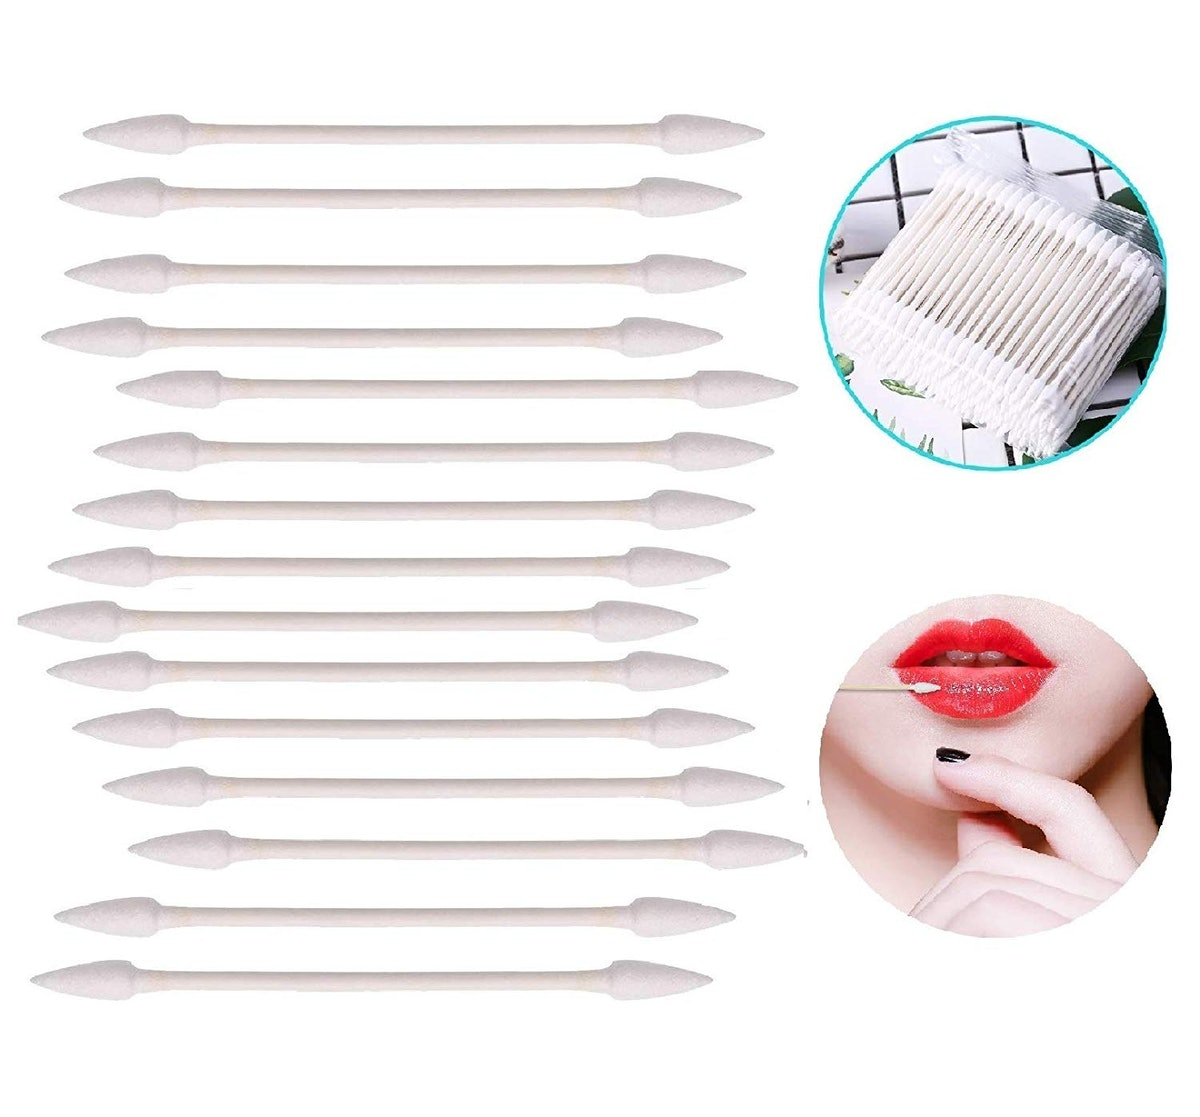 Rayhee Cotton Swabs (800 Pieces)